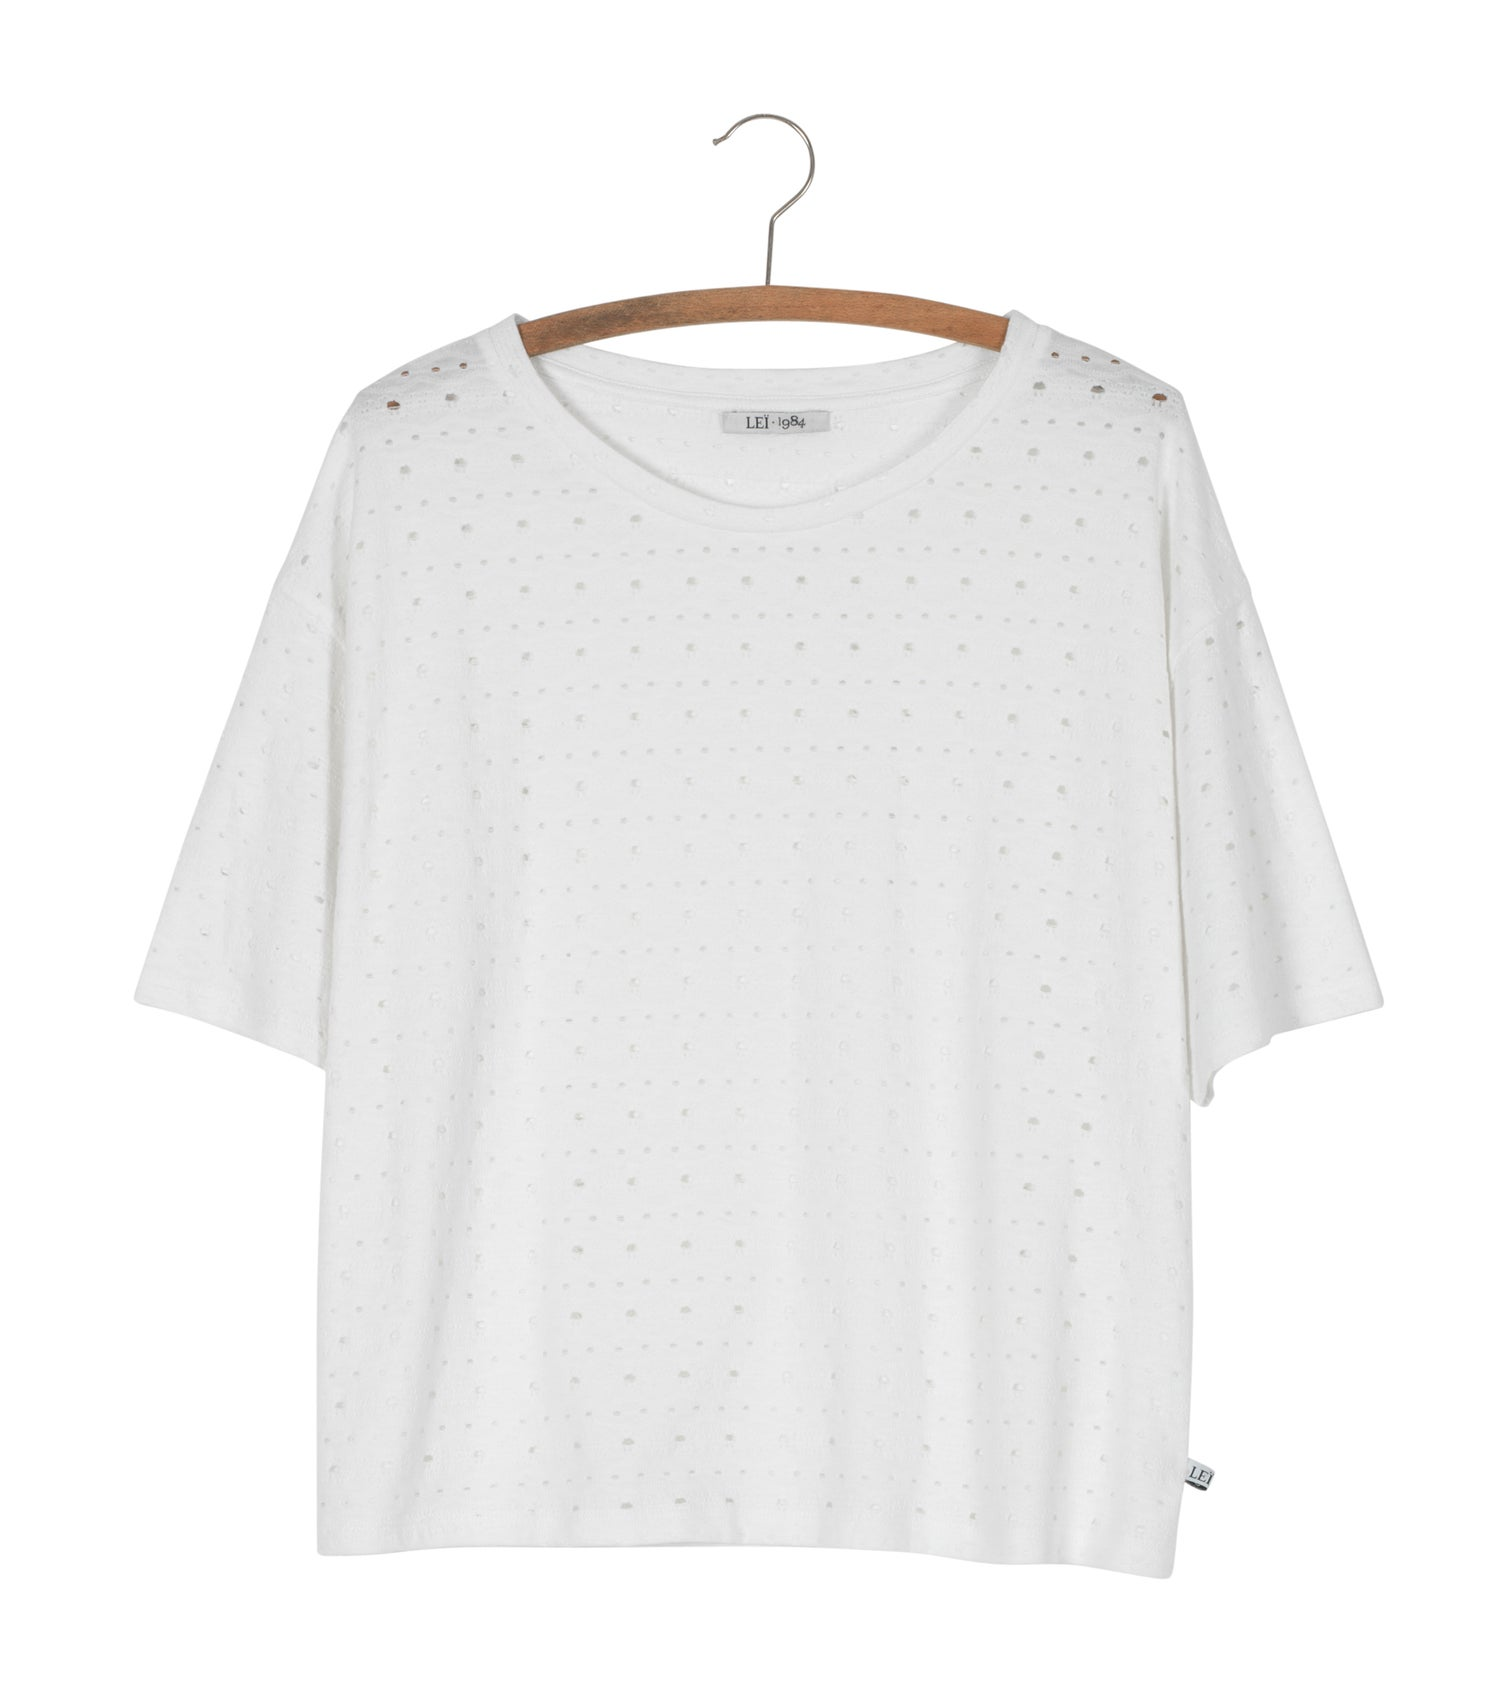 Image of Tee shirt jacquard ajouré ANTO MC 55€ -60%